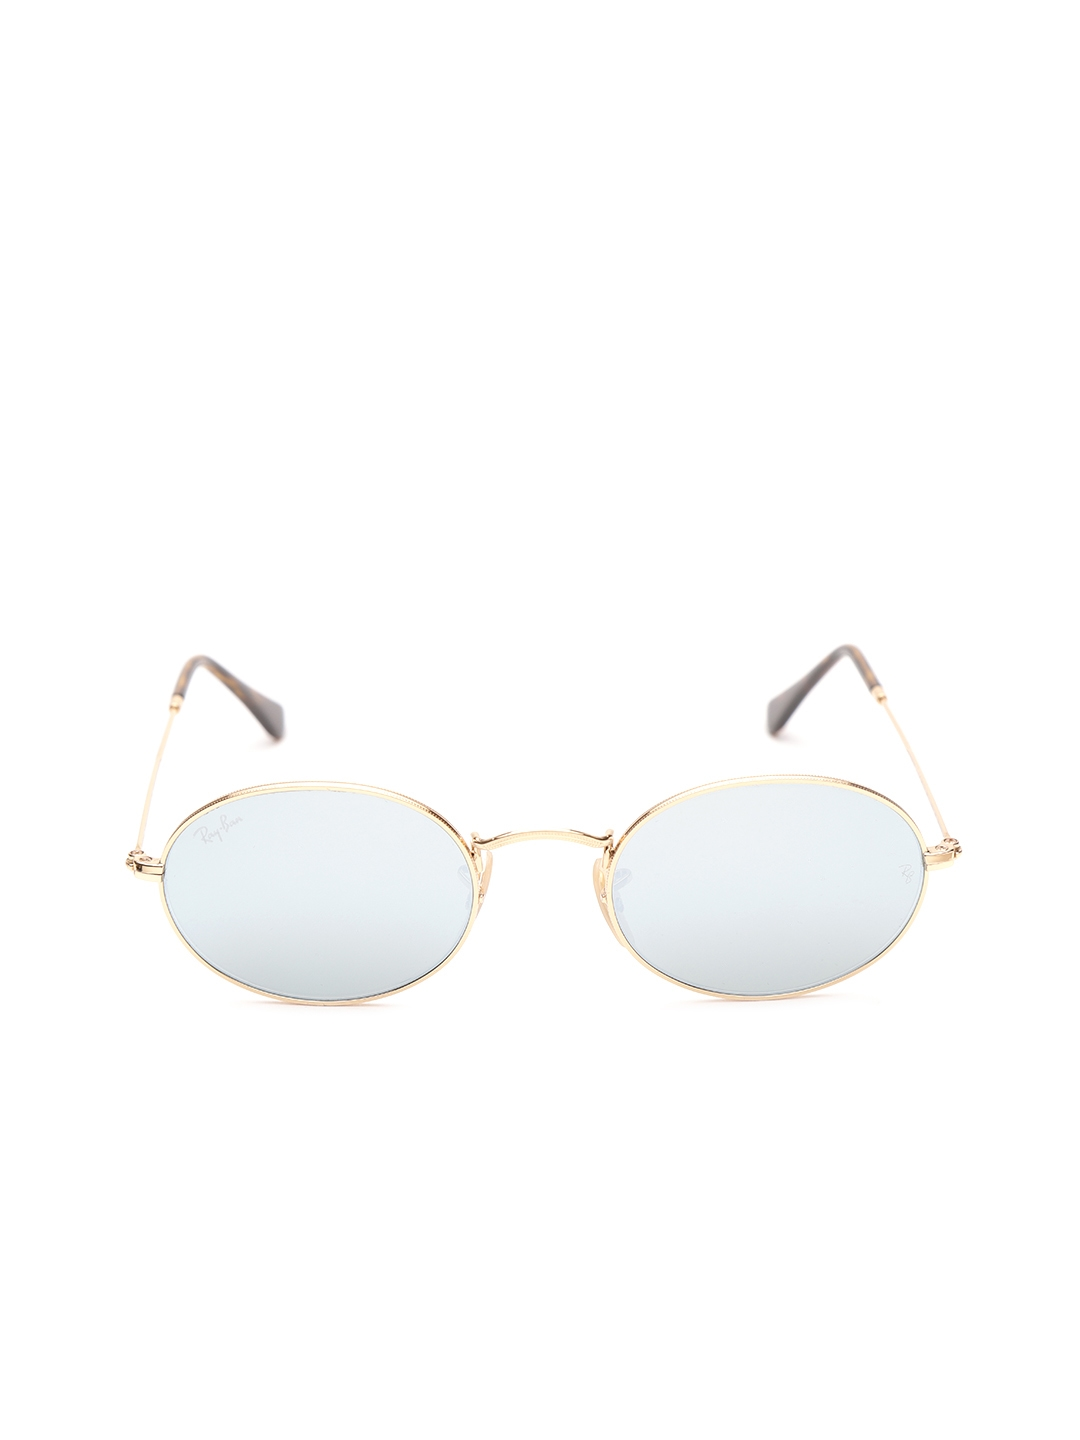 0d696dafd1efd Buy Ray Ban Unisex Mirrored Oval Sunglasses 0RB3547N001 3051 ...